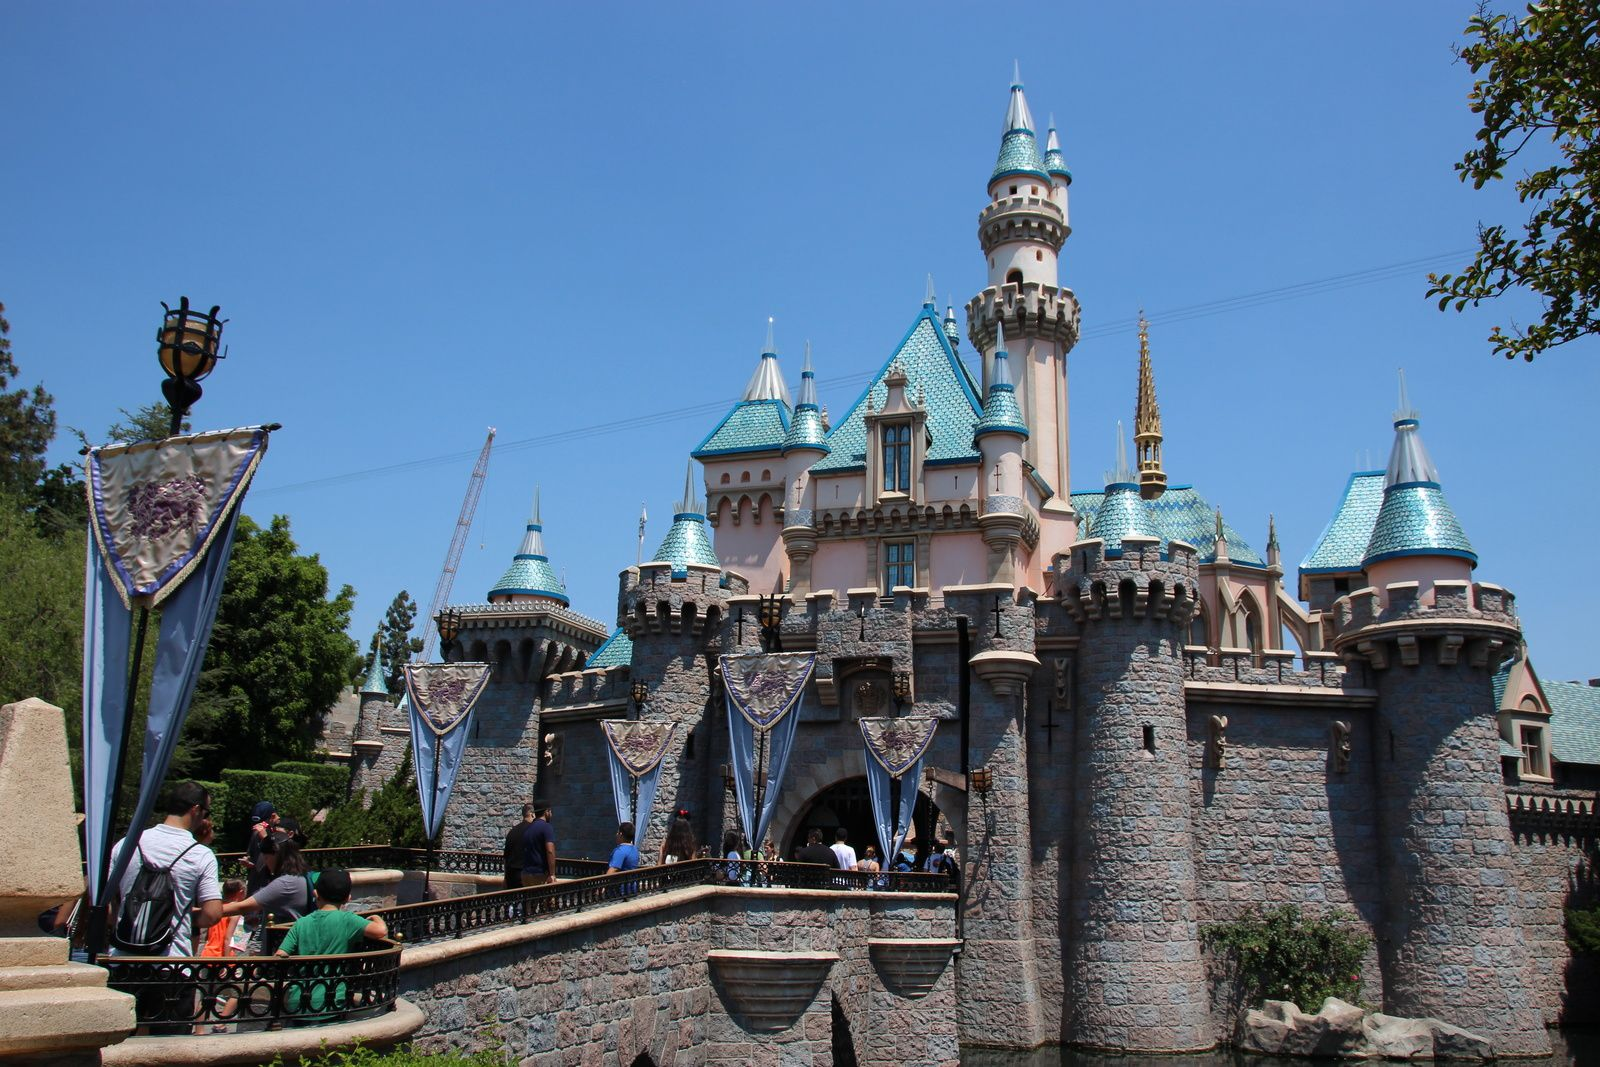 Sleeping Beauty Castle, Disneyland Park (Californie)